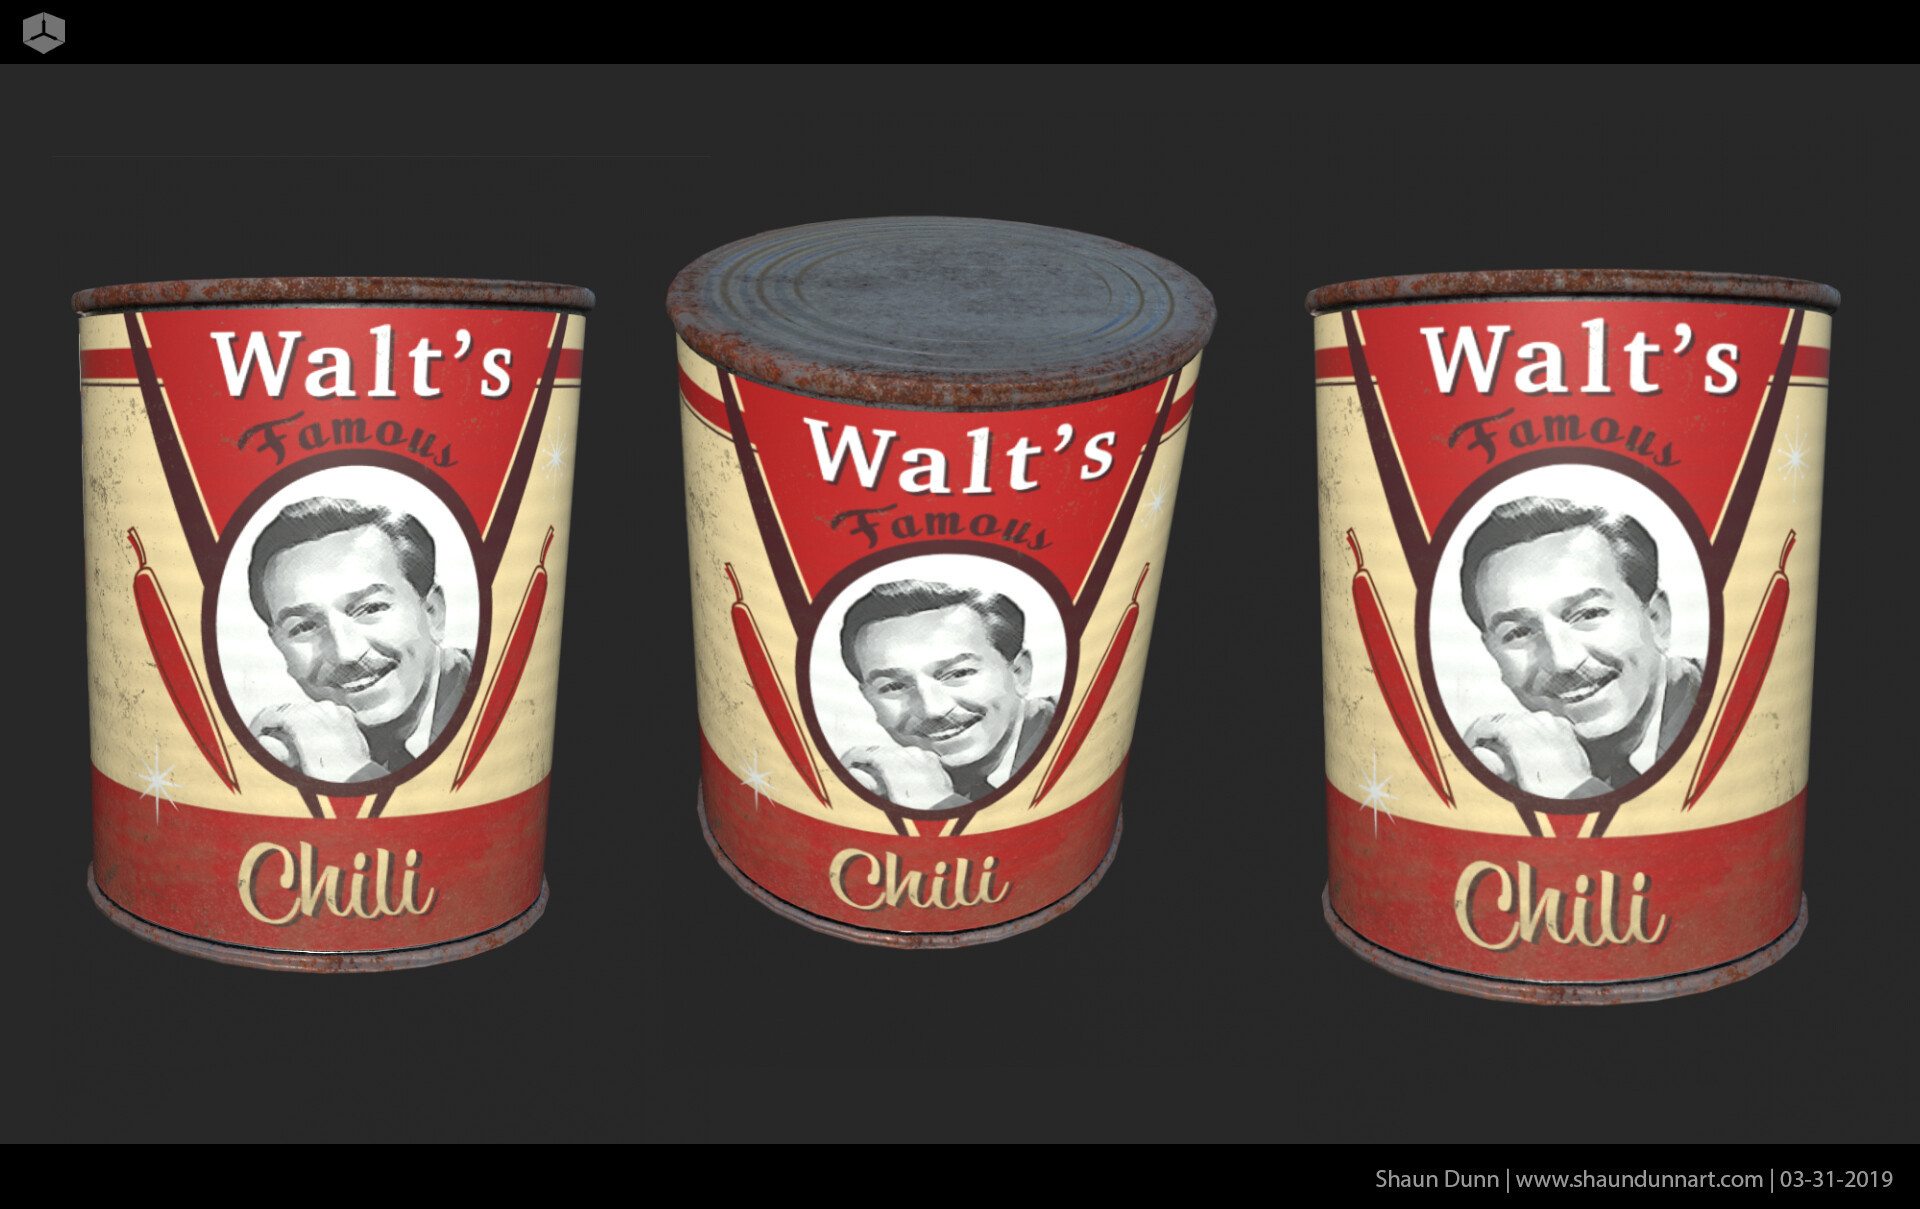 Who knew Walt Disney really has his own Chili recipe? Well he did and perhaps if he canned and sold it maybe he'd like the label I created for this project!